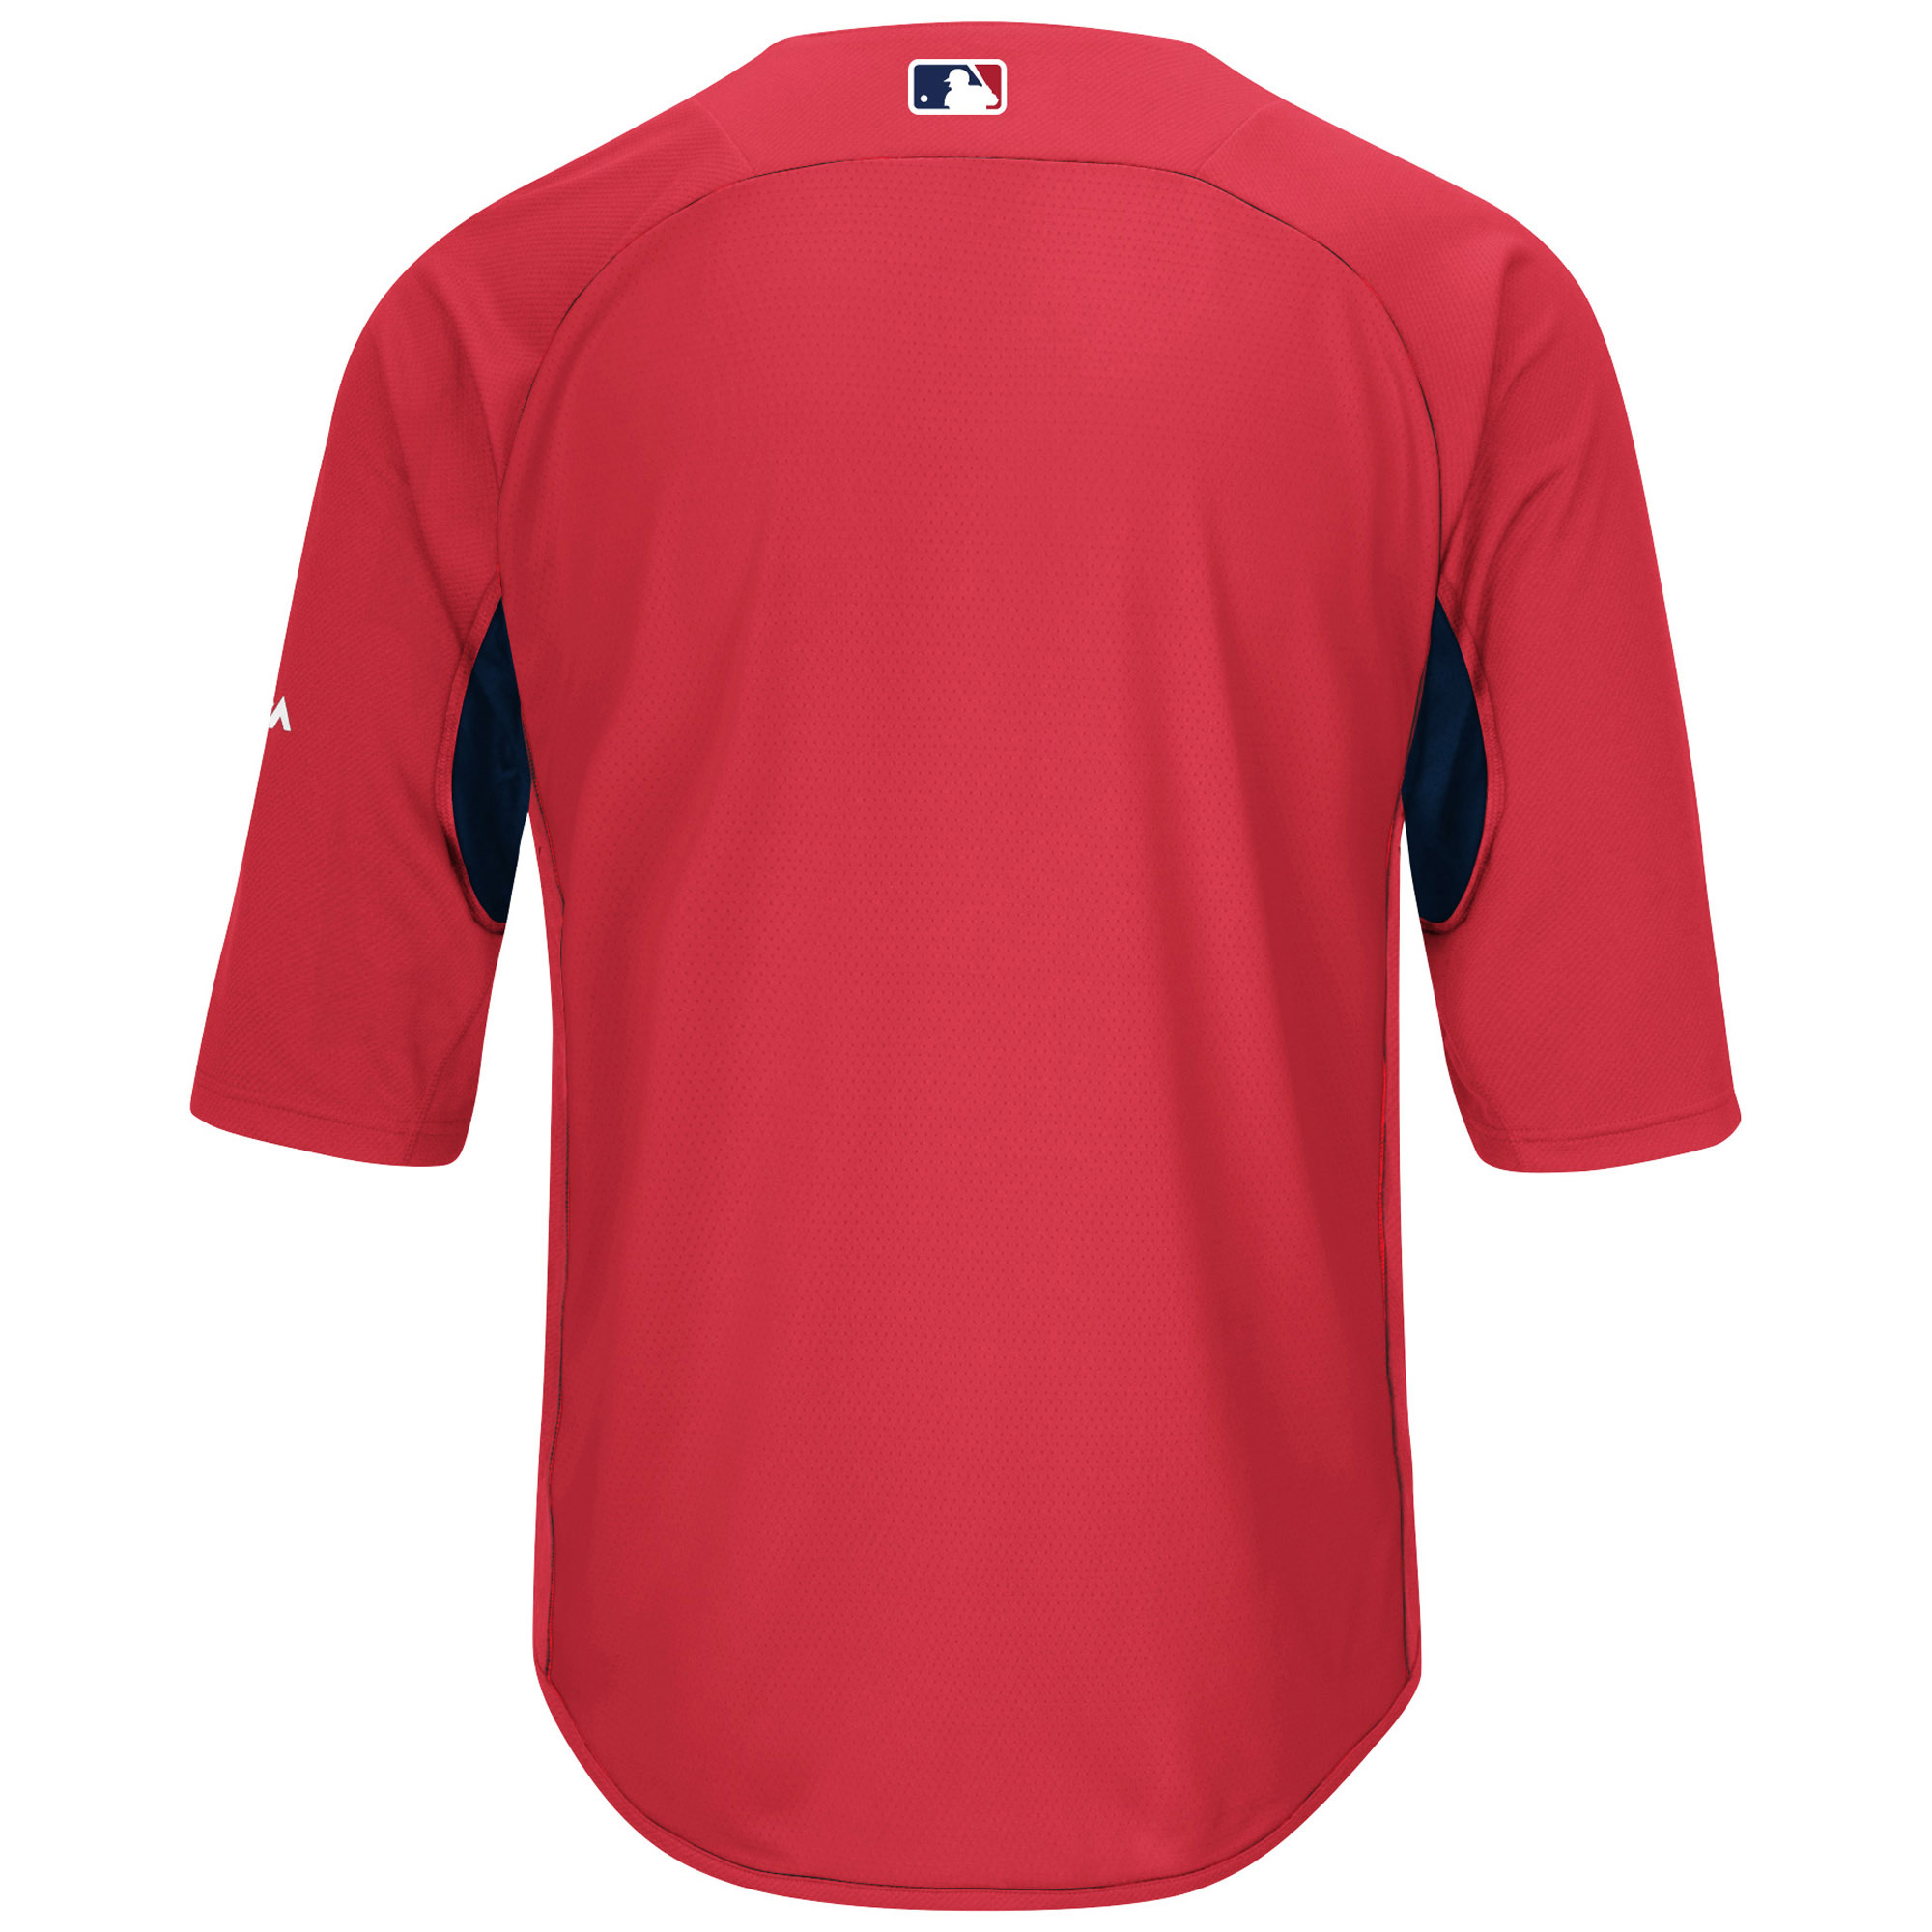 42b77ea68 Boston Red Sox Majestic Authentic Collection On-Field 3 4-Sleeve Batting  Practice Jersey - Red Navy - Walmart.com